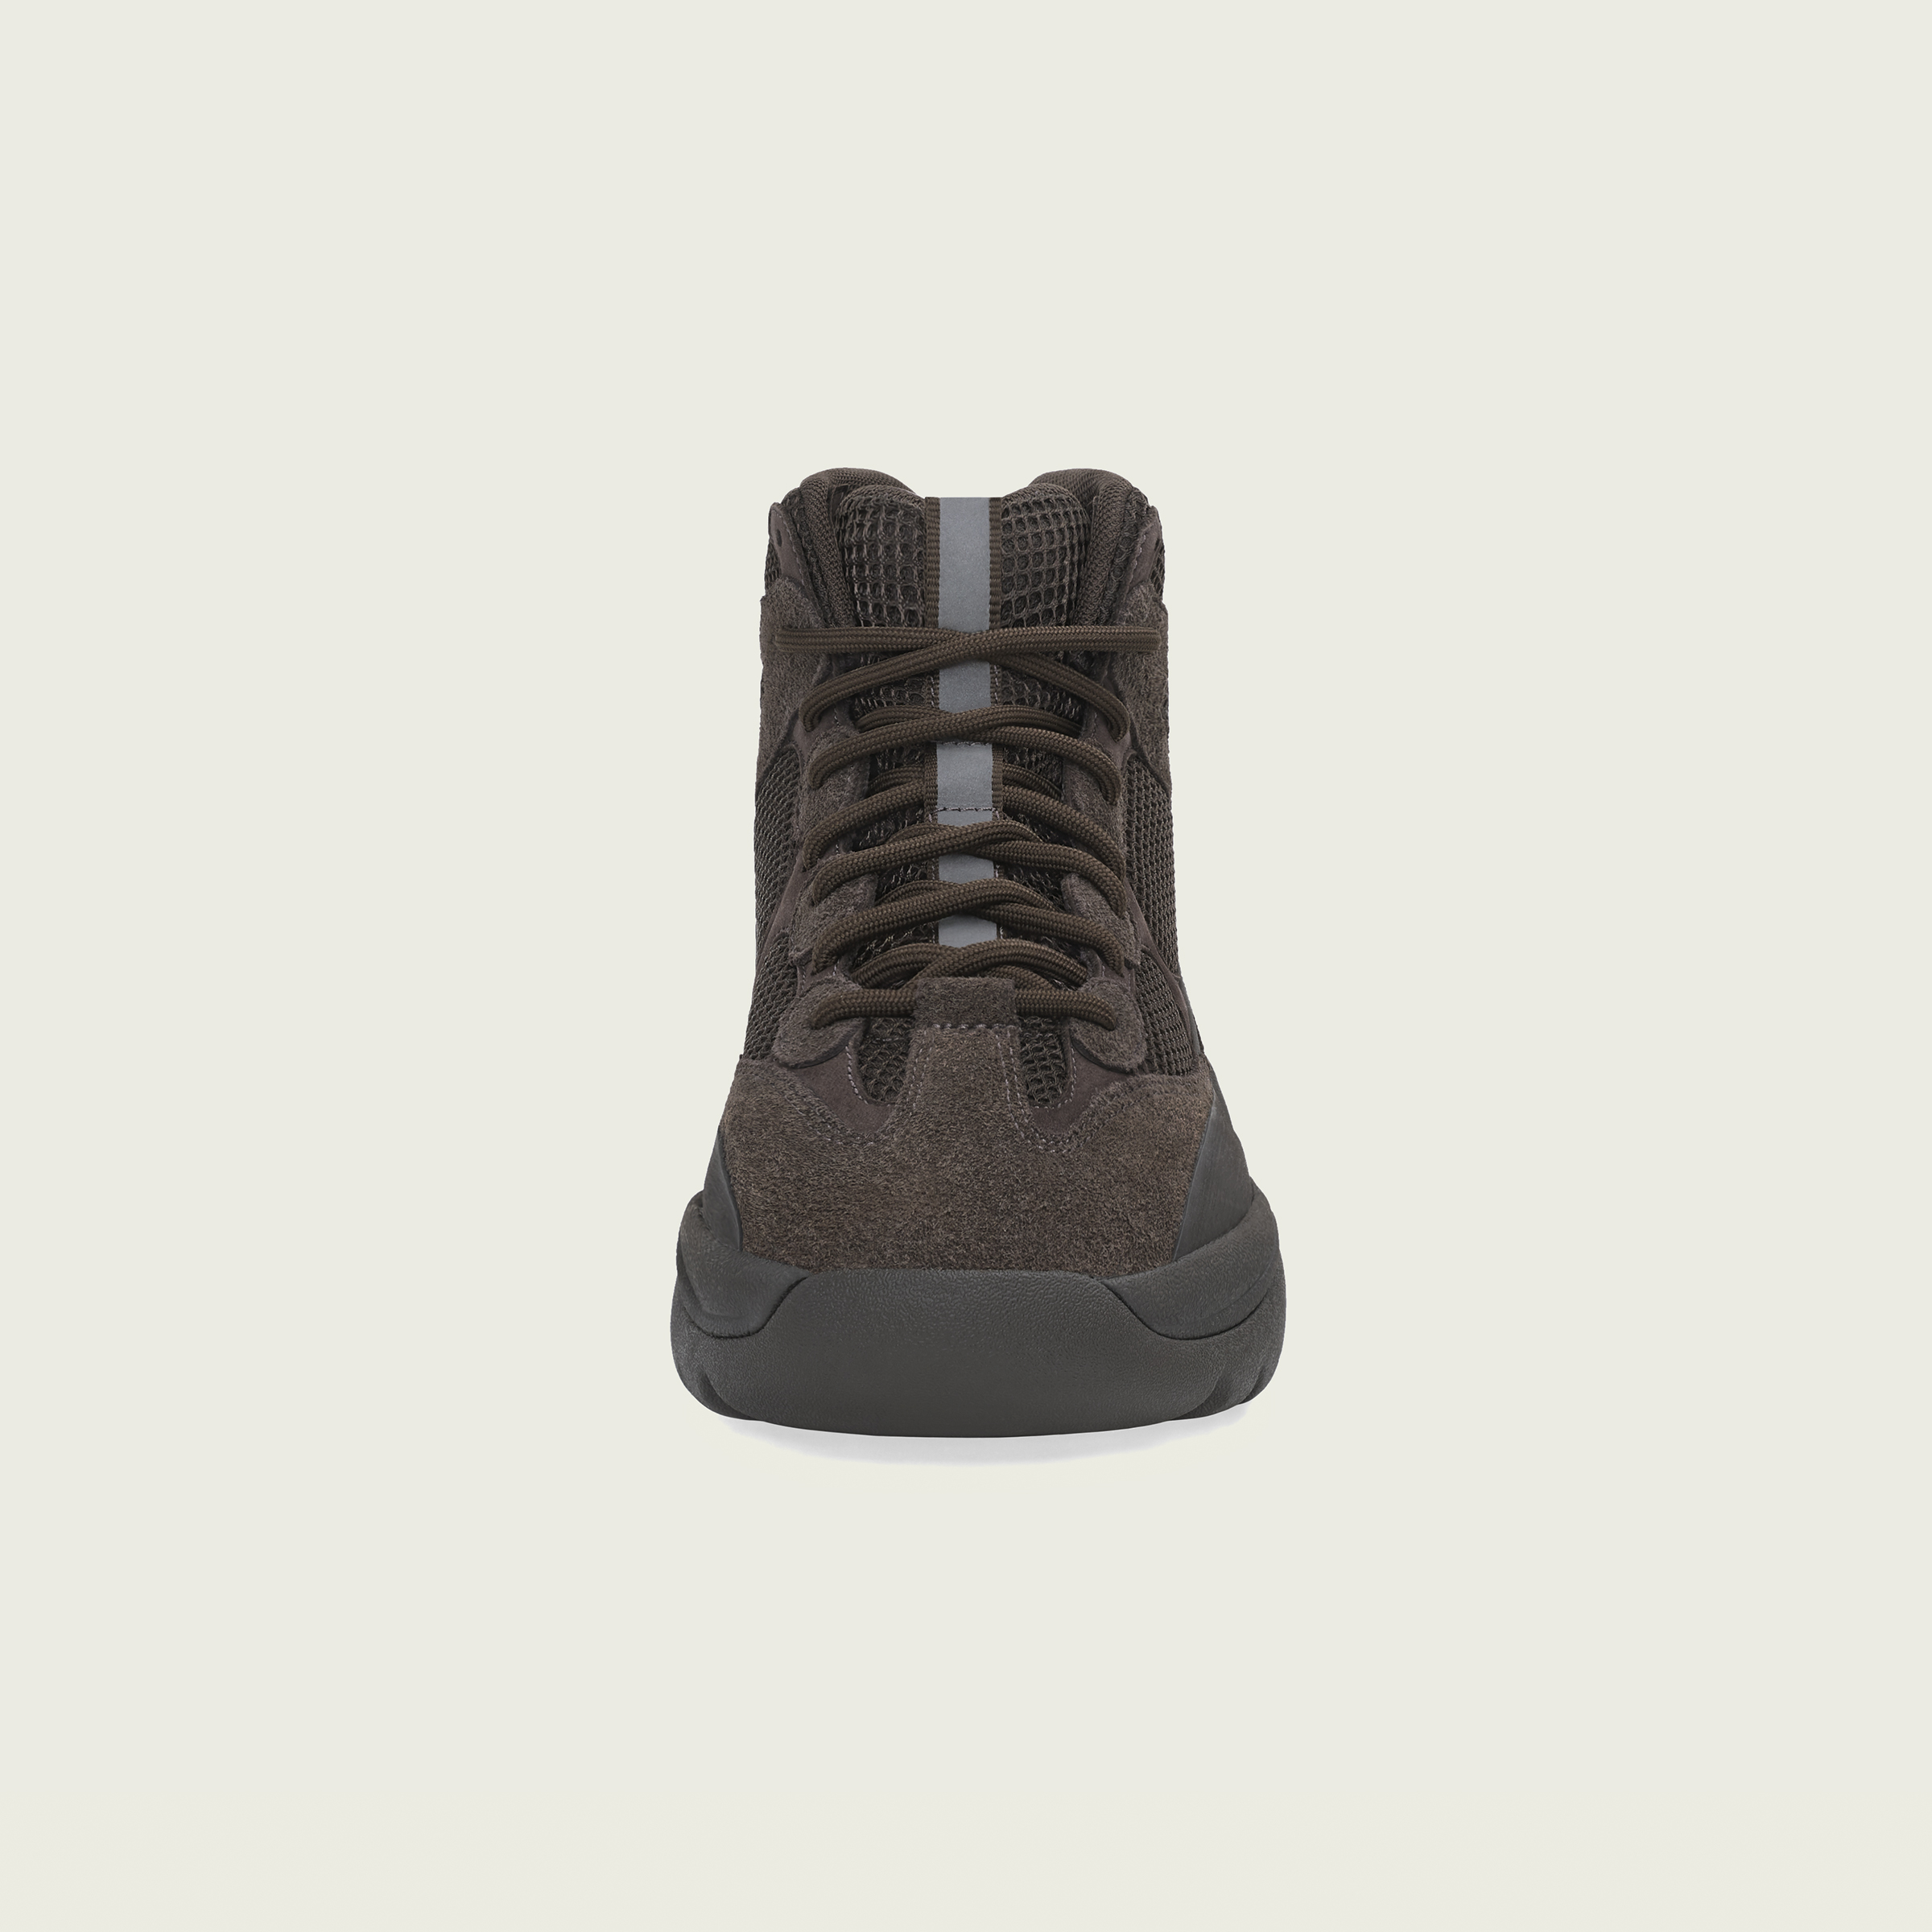 adidas x KANYE WEST Announce The YZY DSRT BT Salt, YZY DSRT BT Rock, And The YZY DSRT BT Oil EG6463 FR AdidasApp